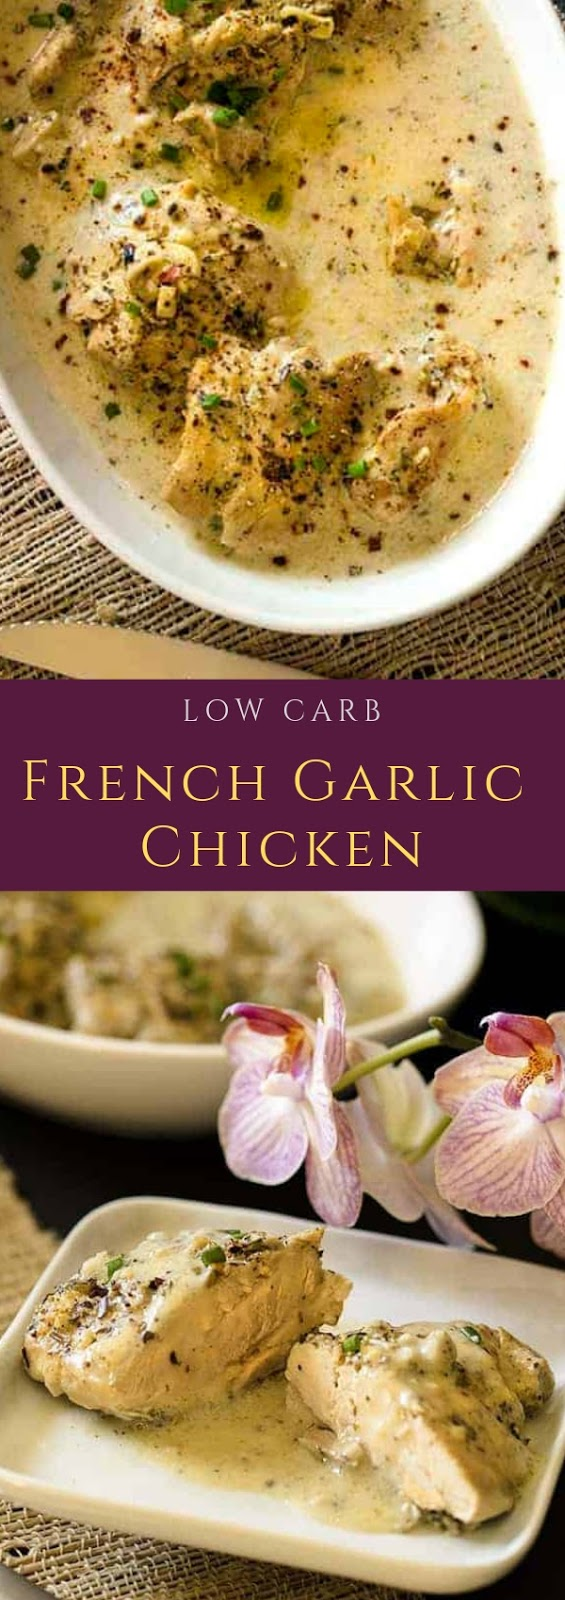 Low Carb French Garlic Chicken #maincourse #dinner #lowcarb #french #garlic #chicken